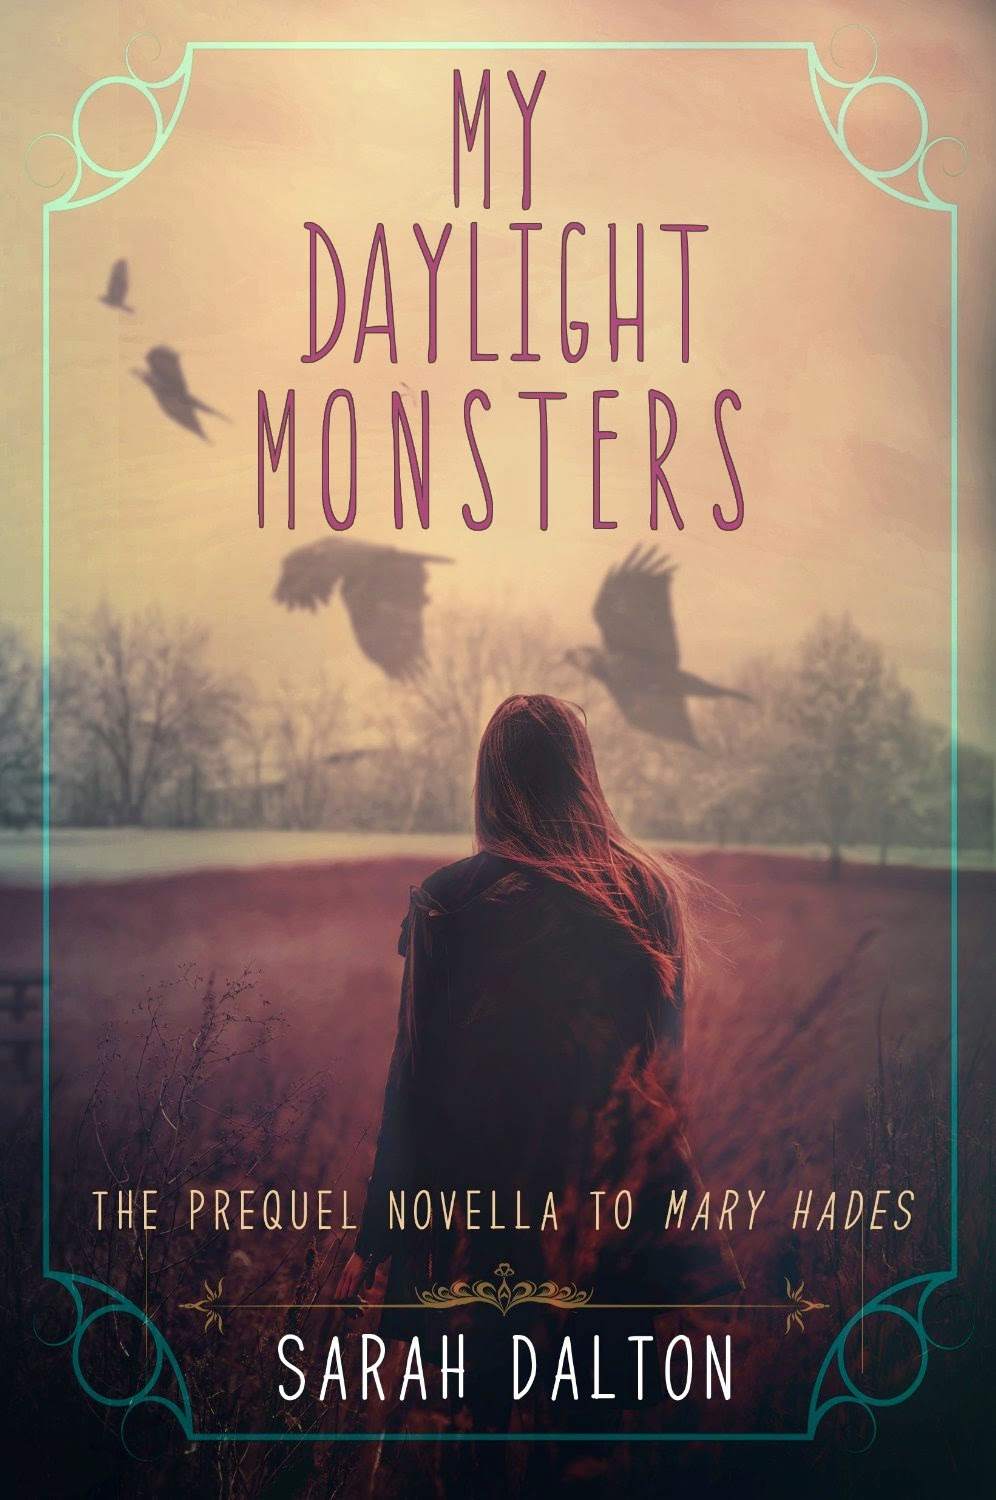 My Daylight Monsters by Sarah Dalton book cover